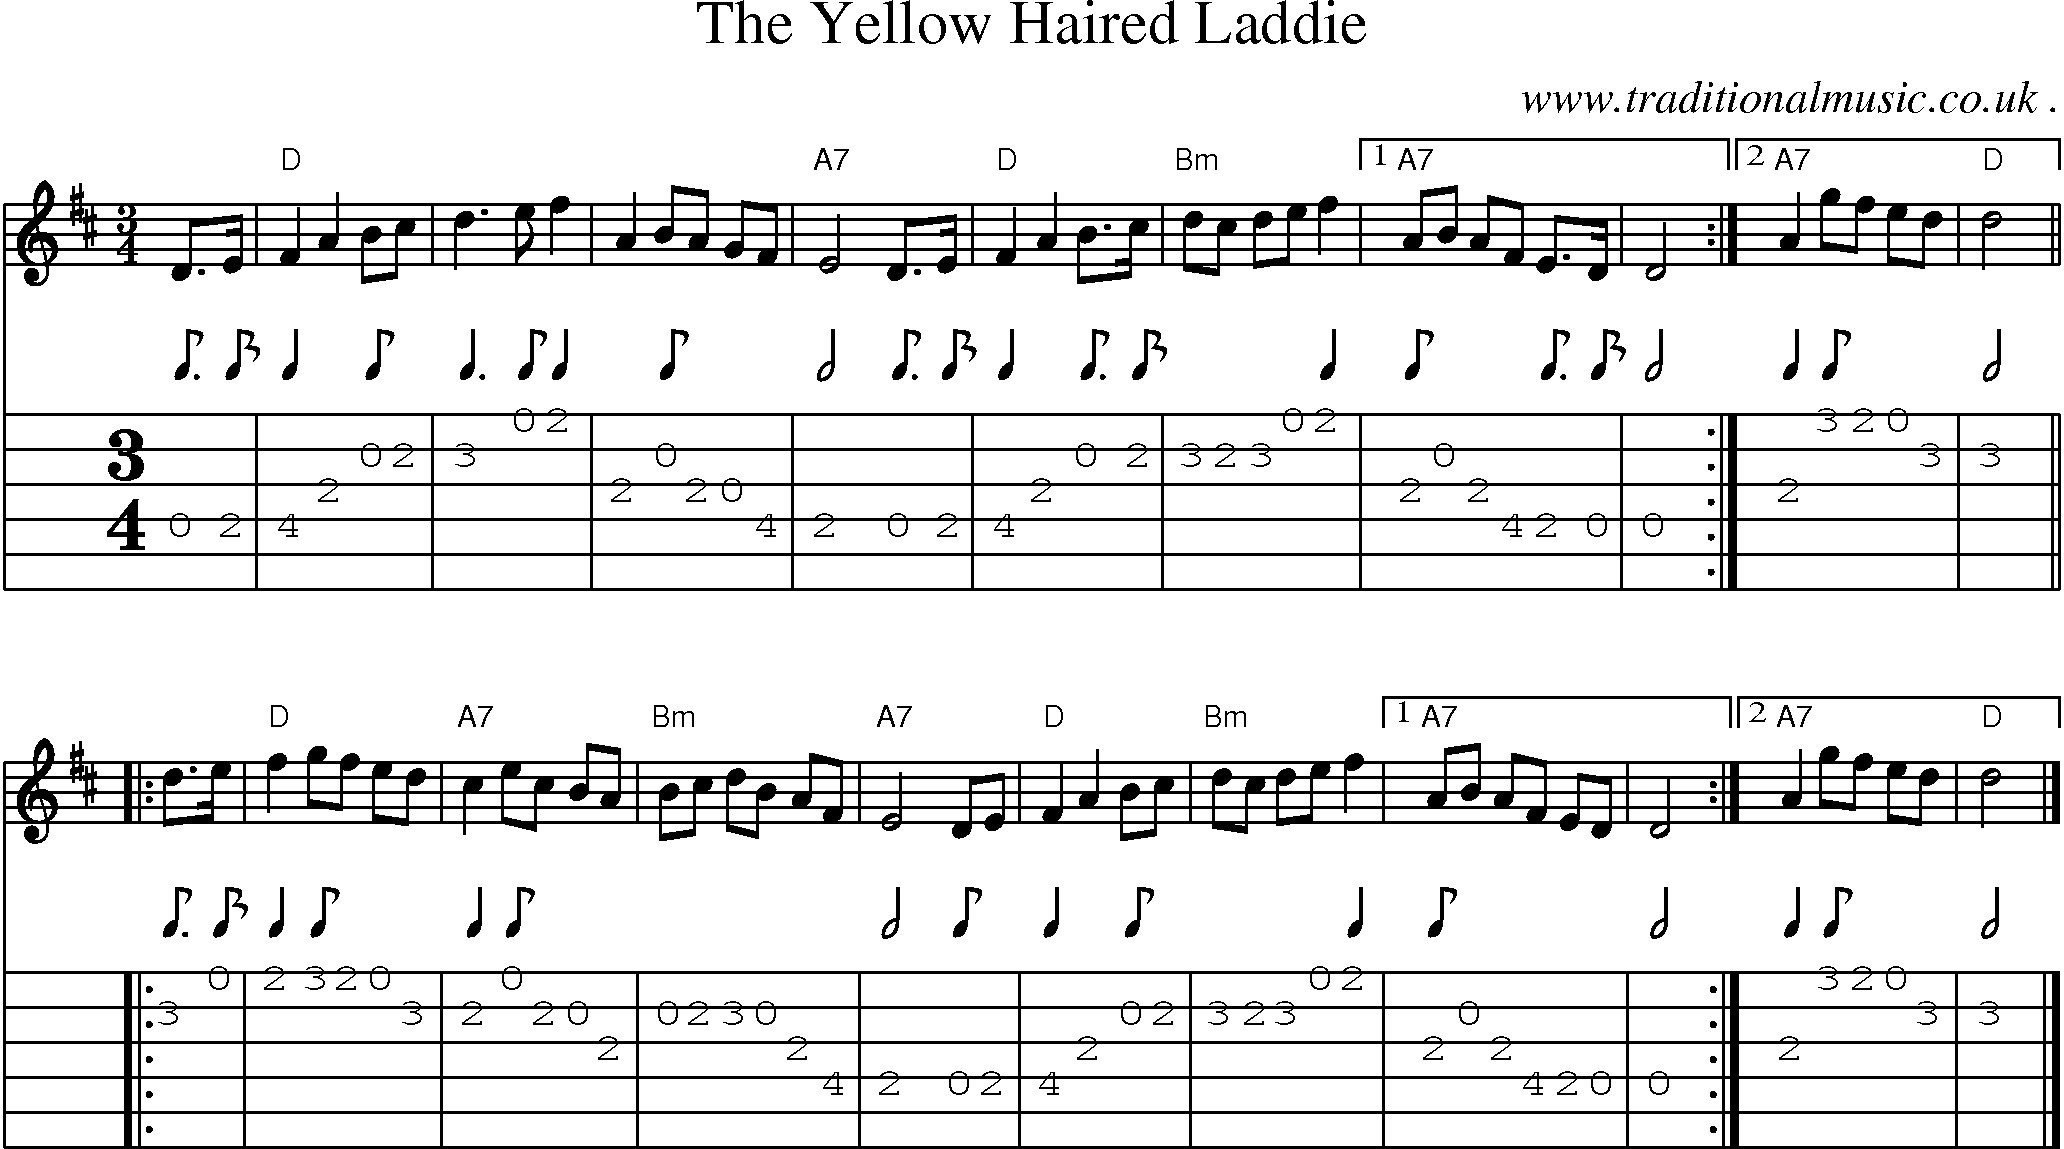 Scottish Tune, Sheetmusic, Midi, Mp3, Guitar chords u0026 tabs: The Yellow Haired Laddie